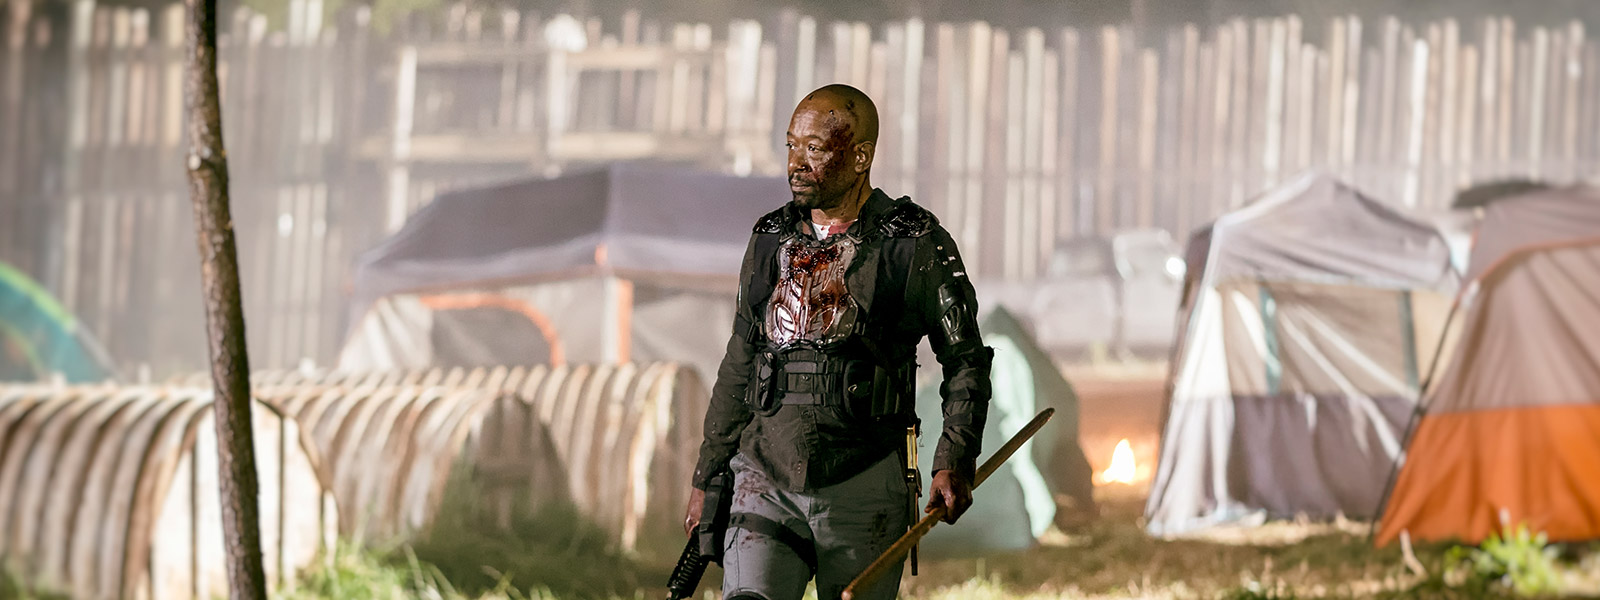 the-walking-dead-episode-814-morgan-james-post-800×600